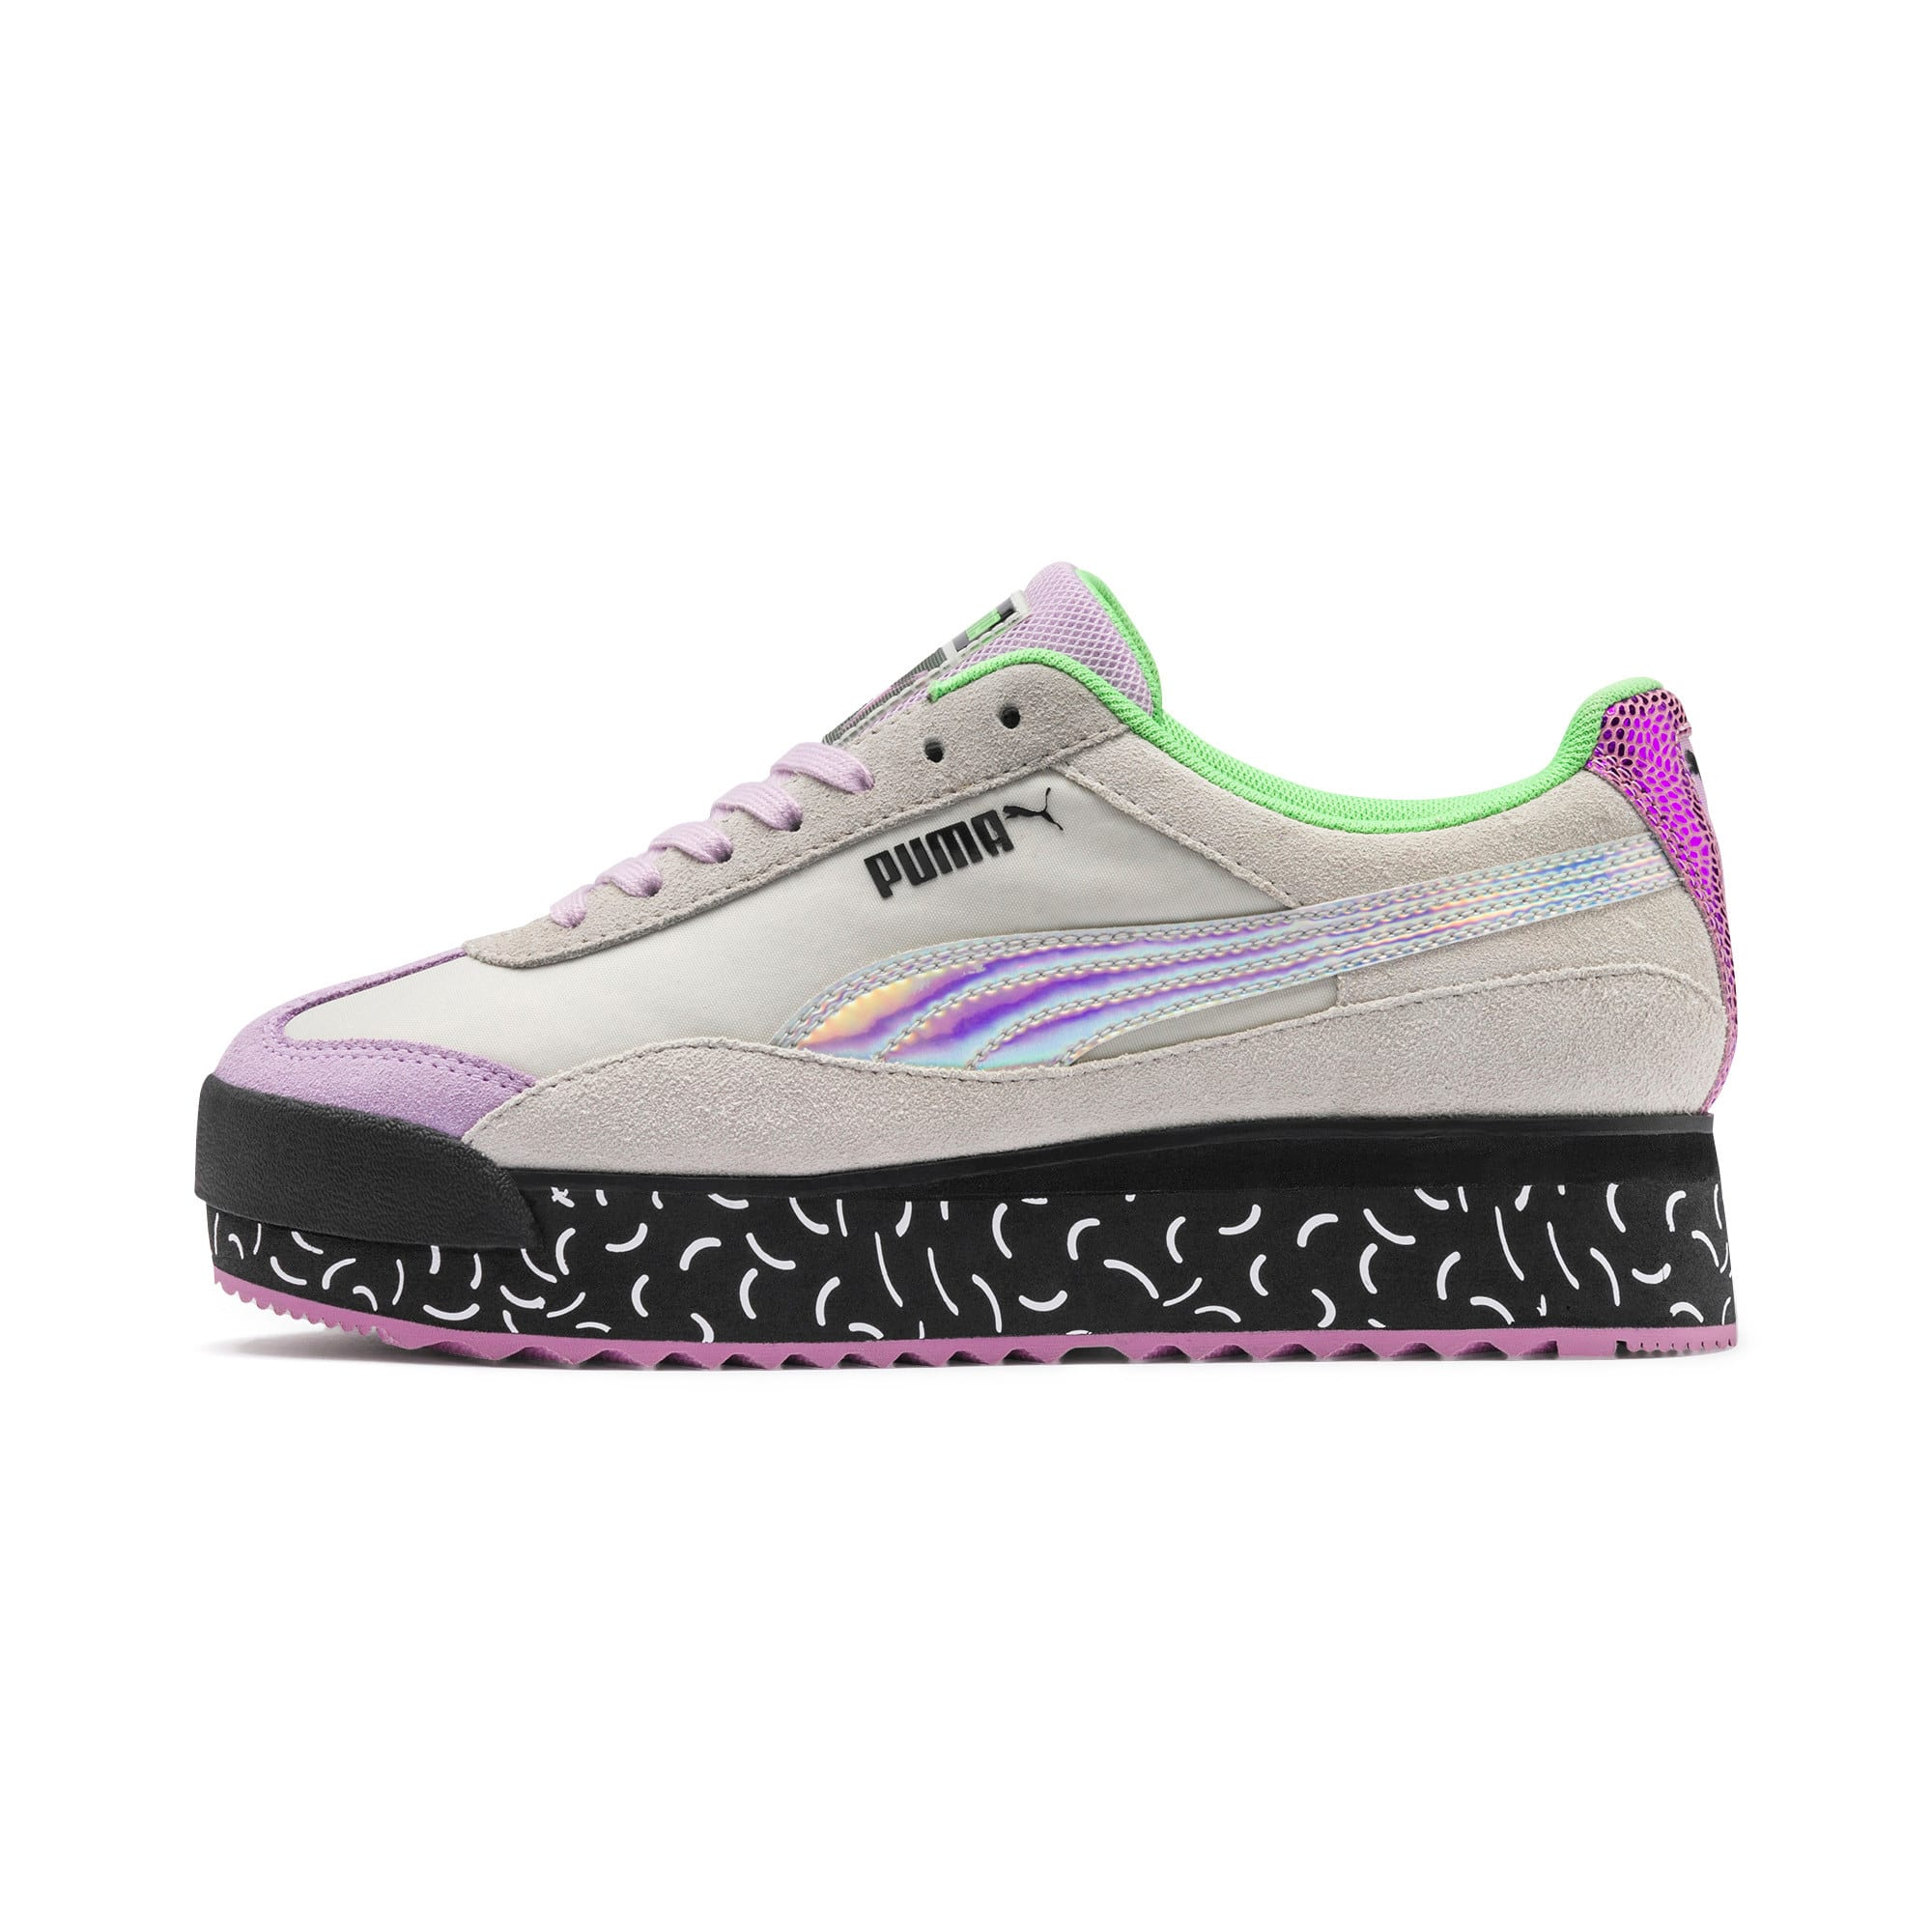 Thumbnail 1 of Roma Amor Dimension Women's Trainers, Agate Gray-Smoky Grape, medium